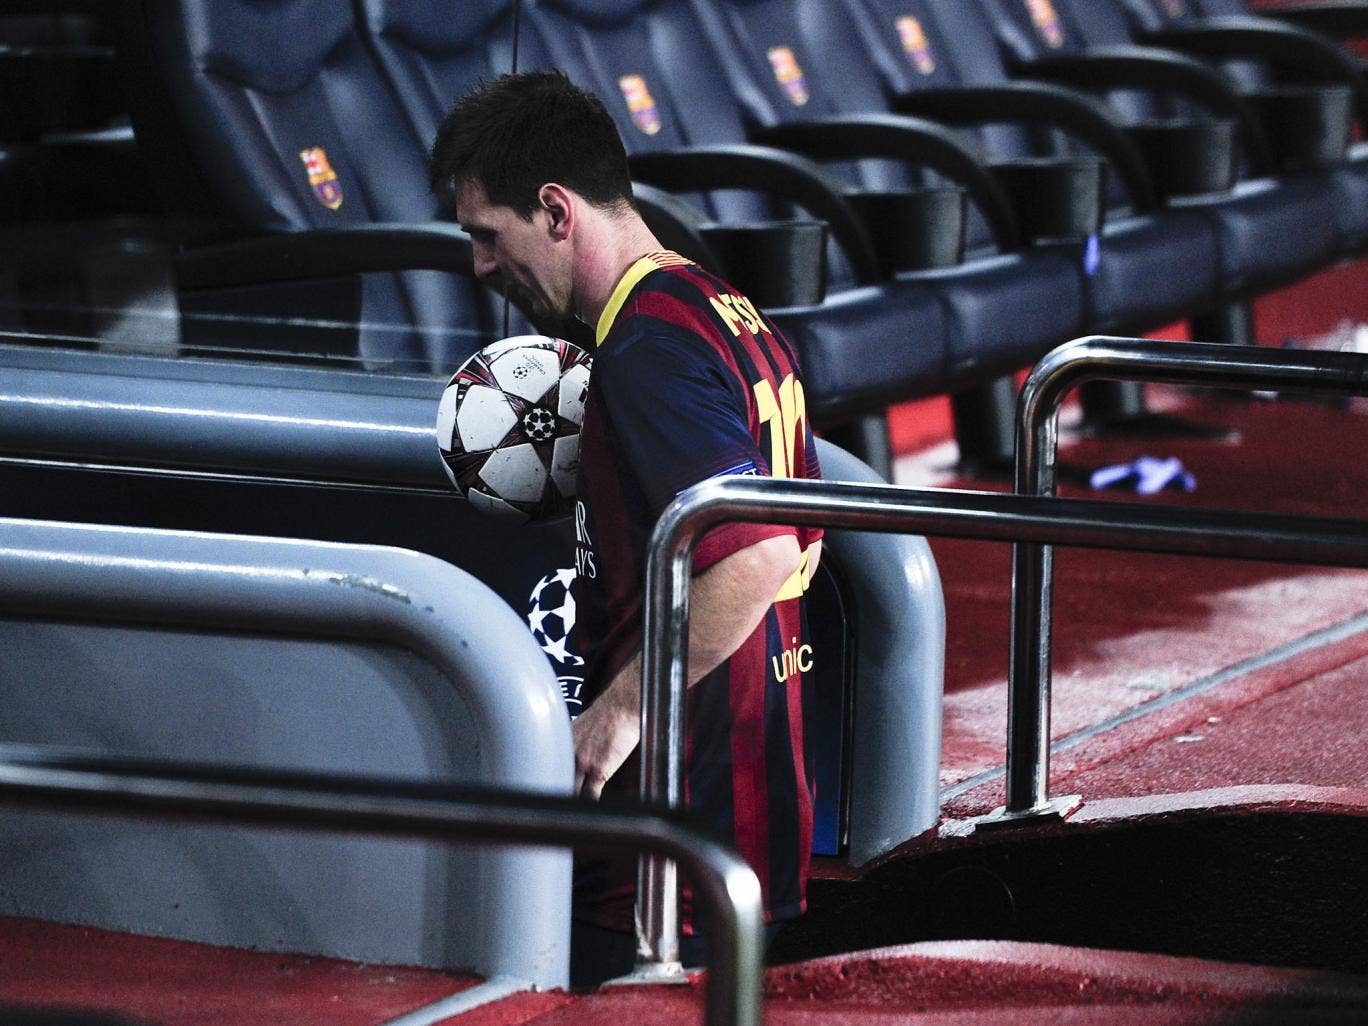 Lionel Messi leaves with the match ball after his hat-trick against Ajax